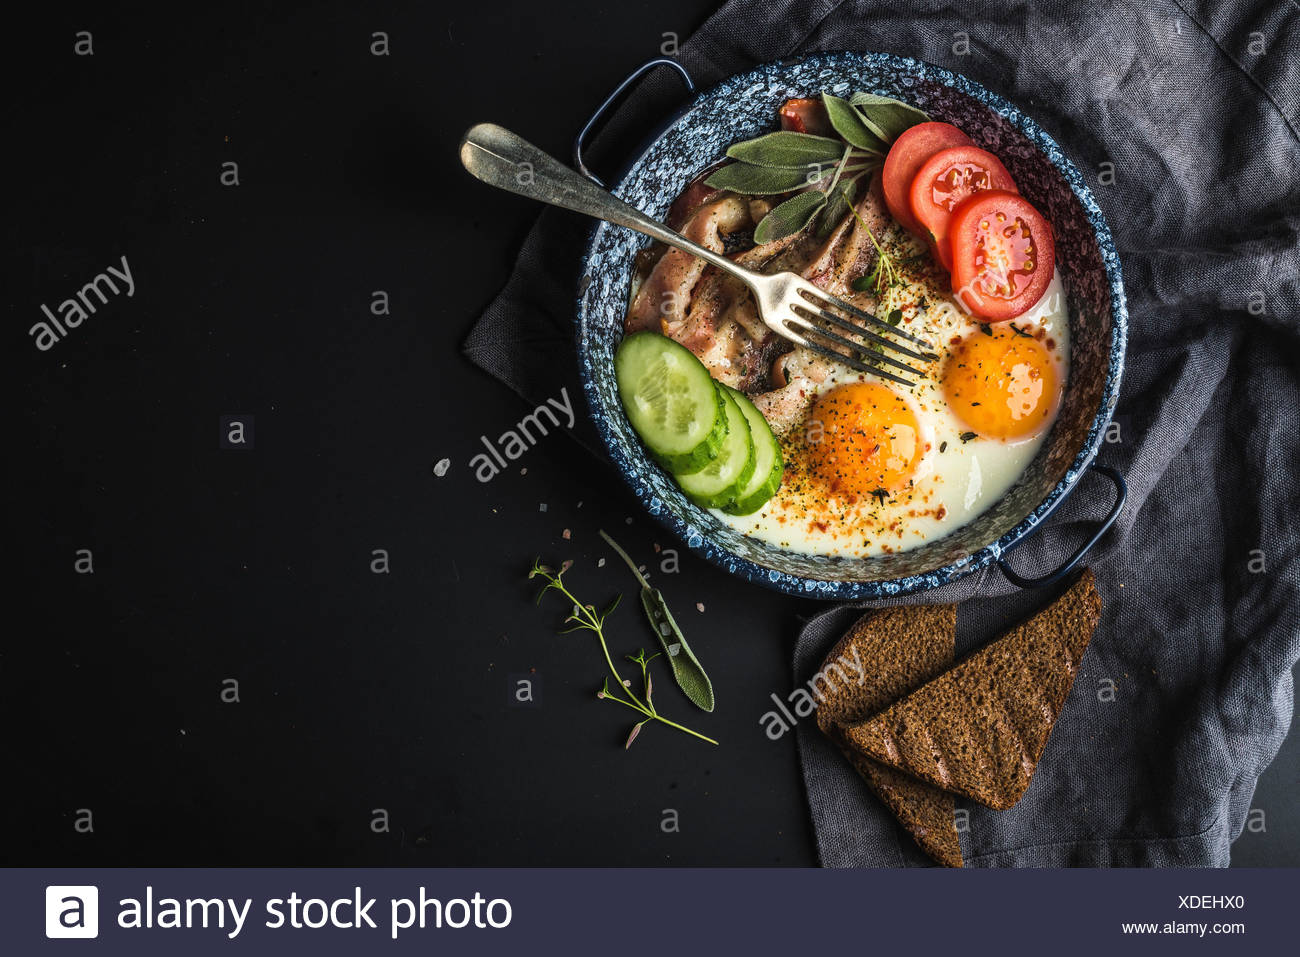 Breakfast set. Pan of fried eggs with bacon, fresh tomato, cucumber, sage and bread on dark serving board over black background, Stock Photo